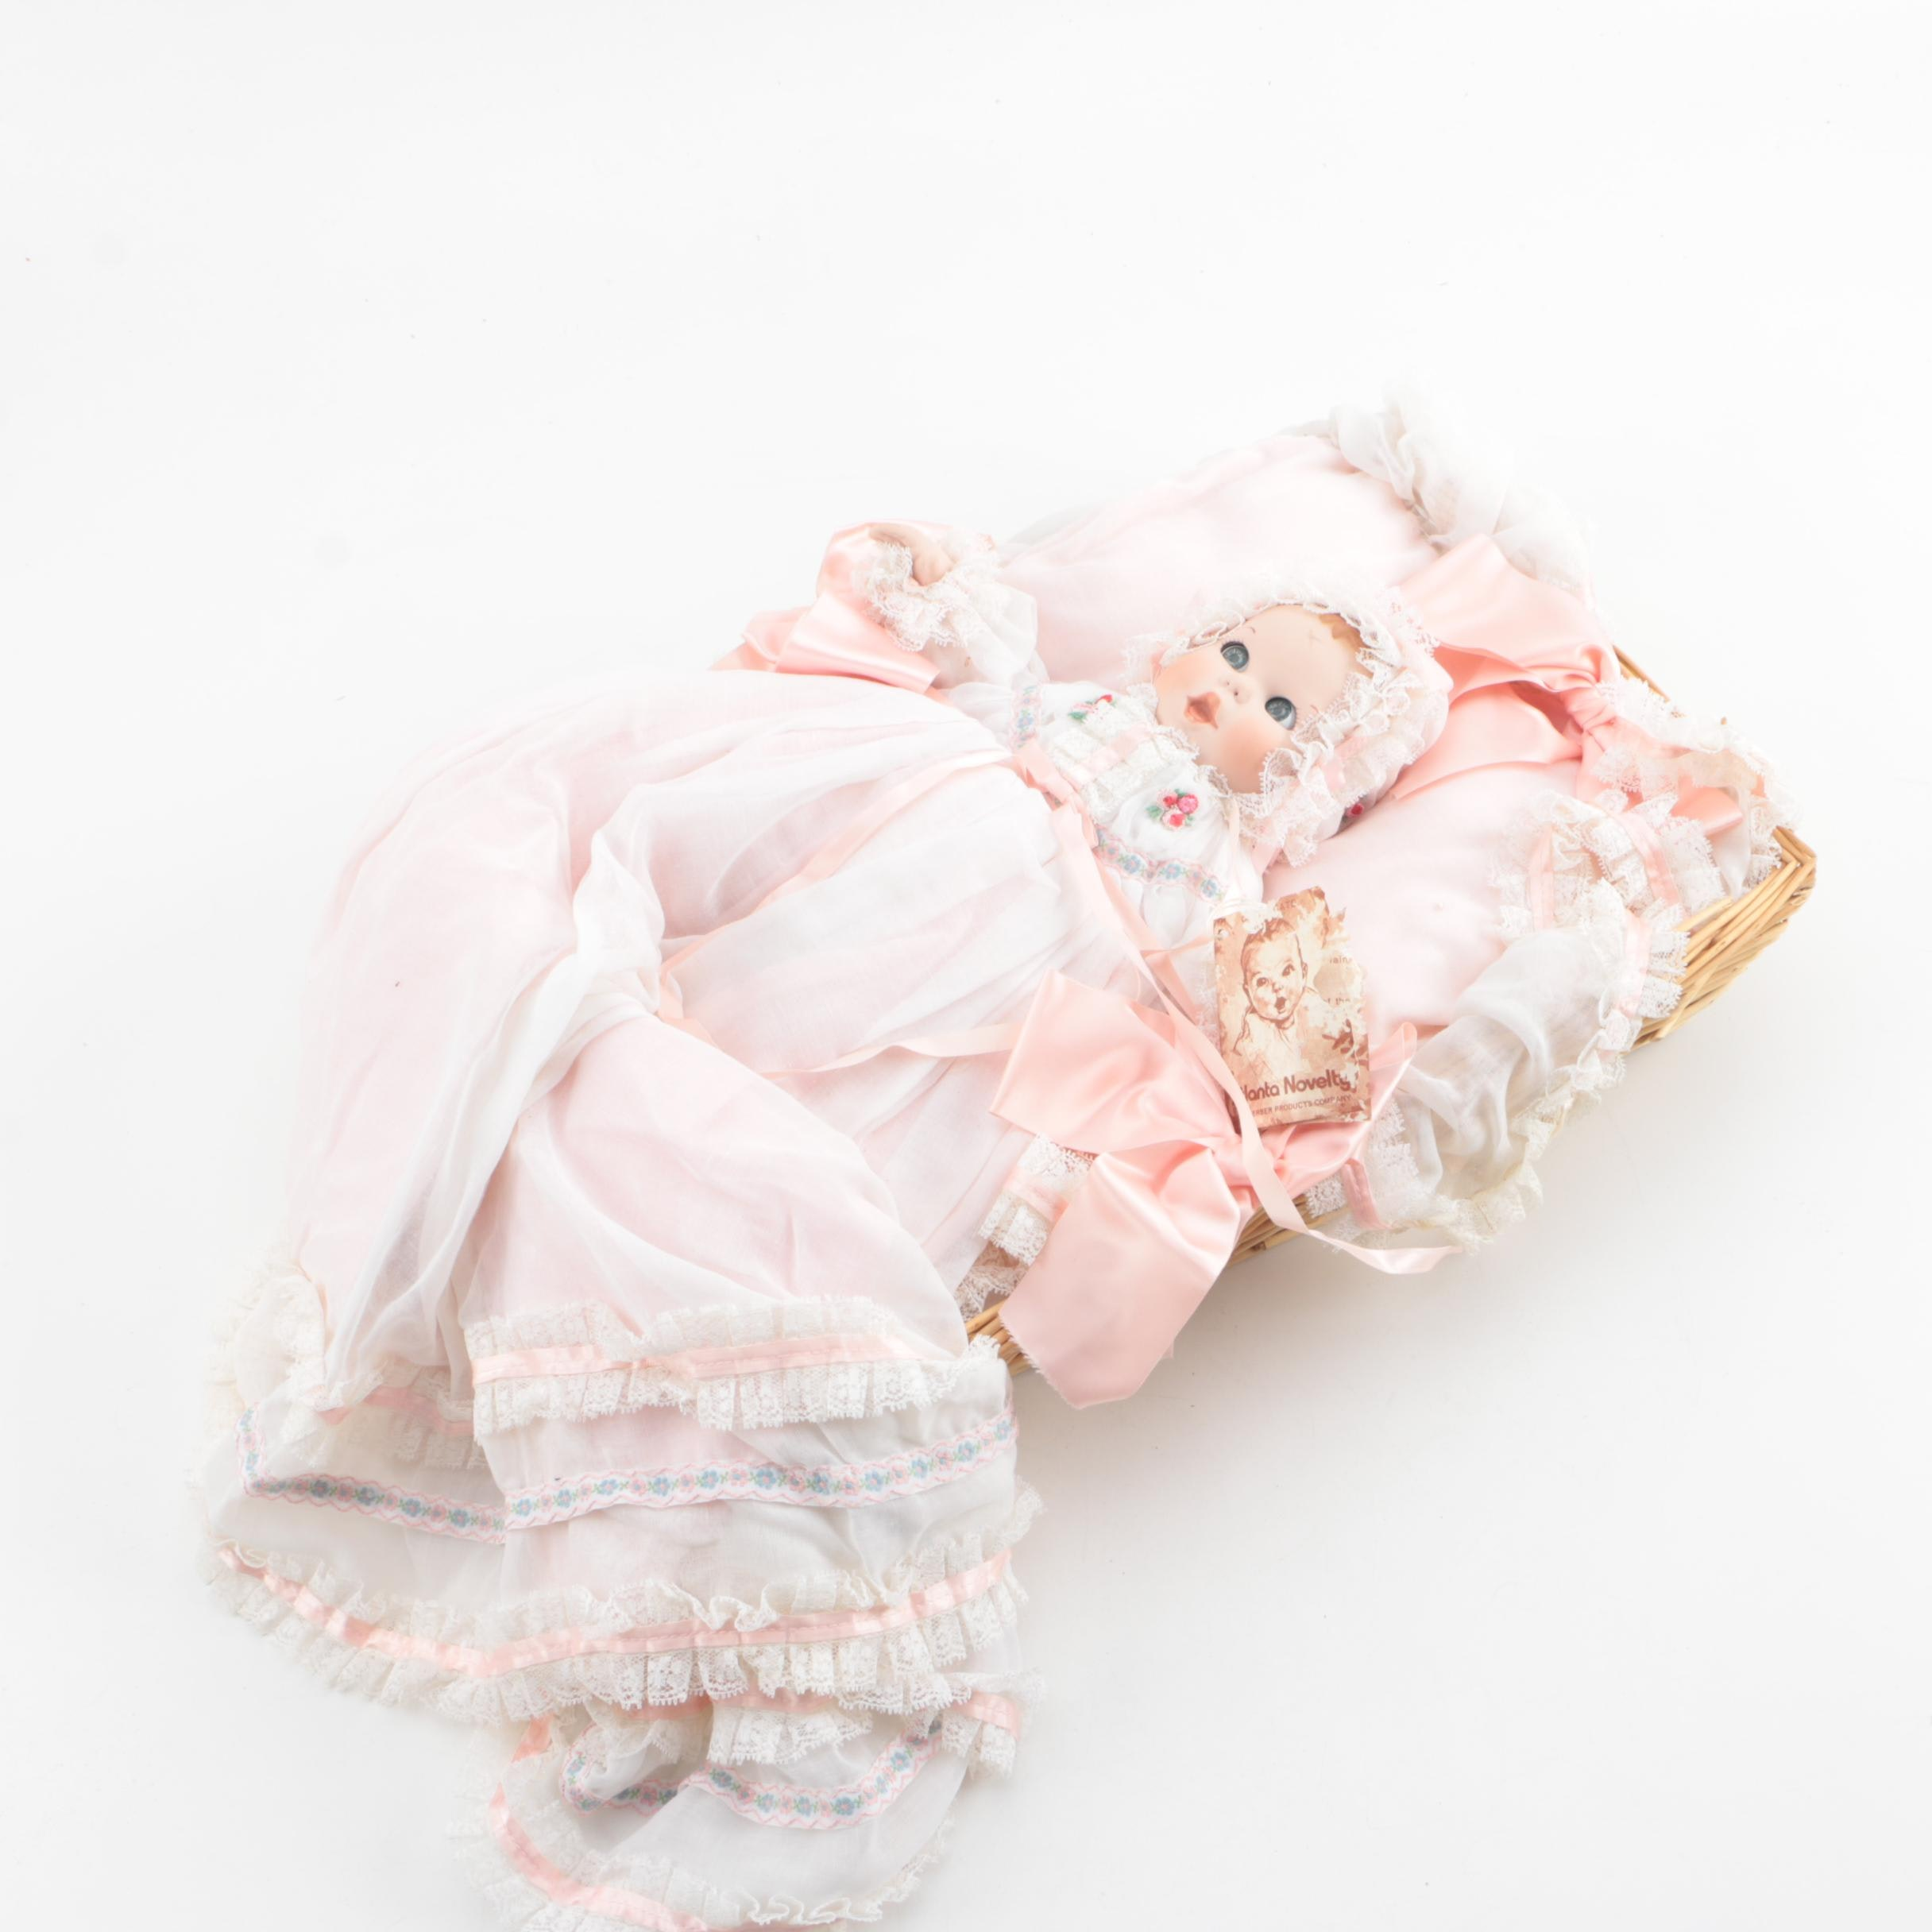 Vintage Gerber Porcelain Baby Doll with Wicker Bed